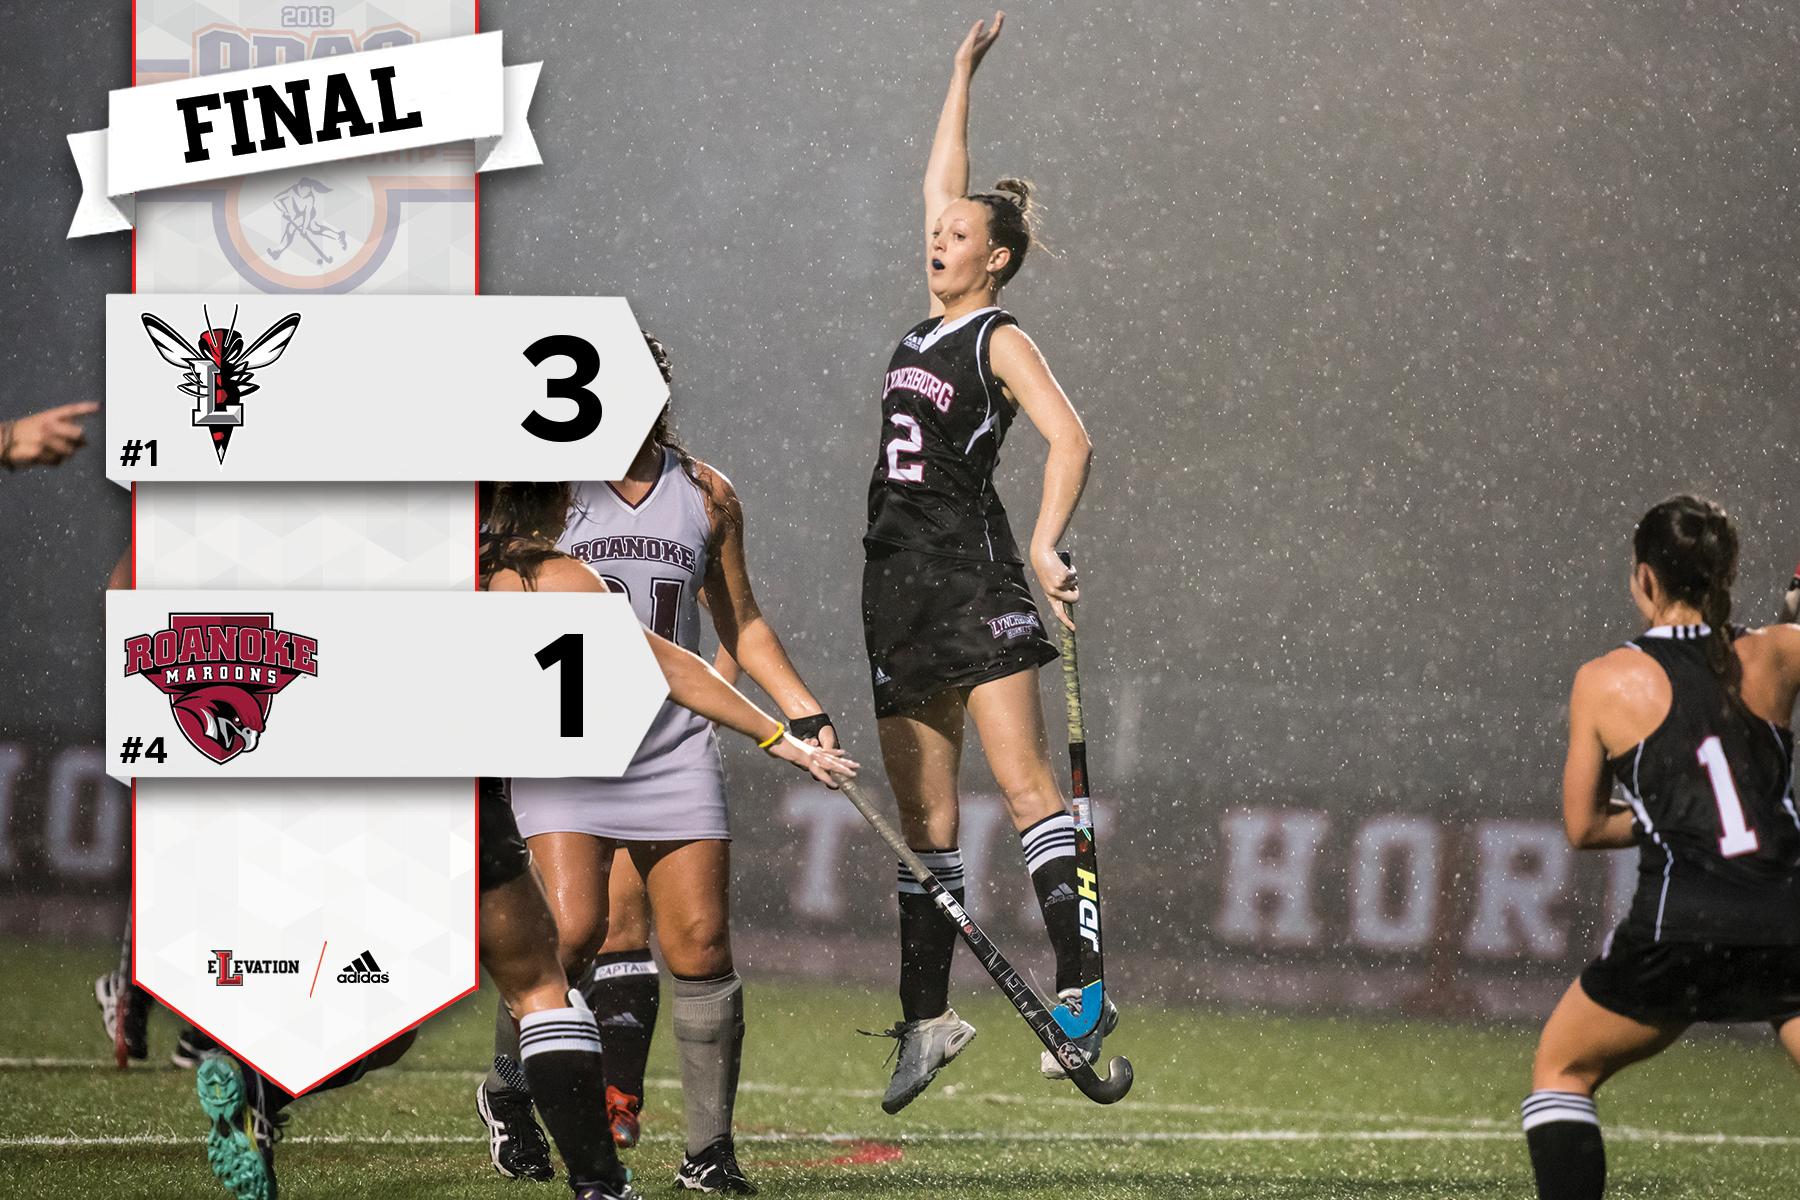 Lynchburg's Emily Dudley jumps in the rain to celebrate a field hockey goal